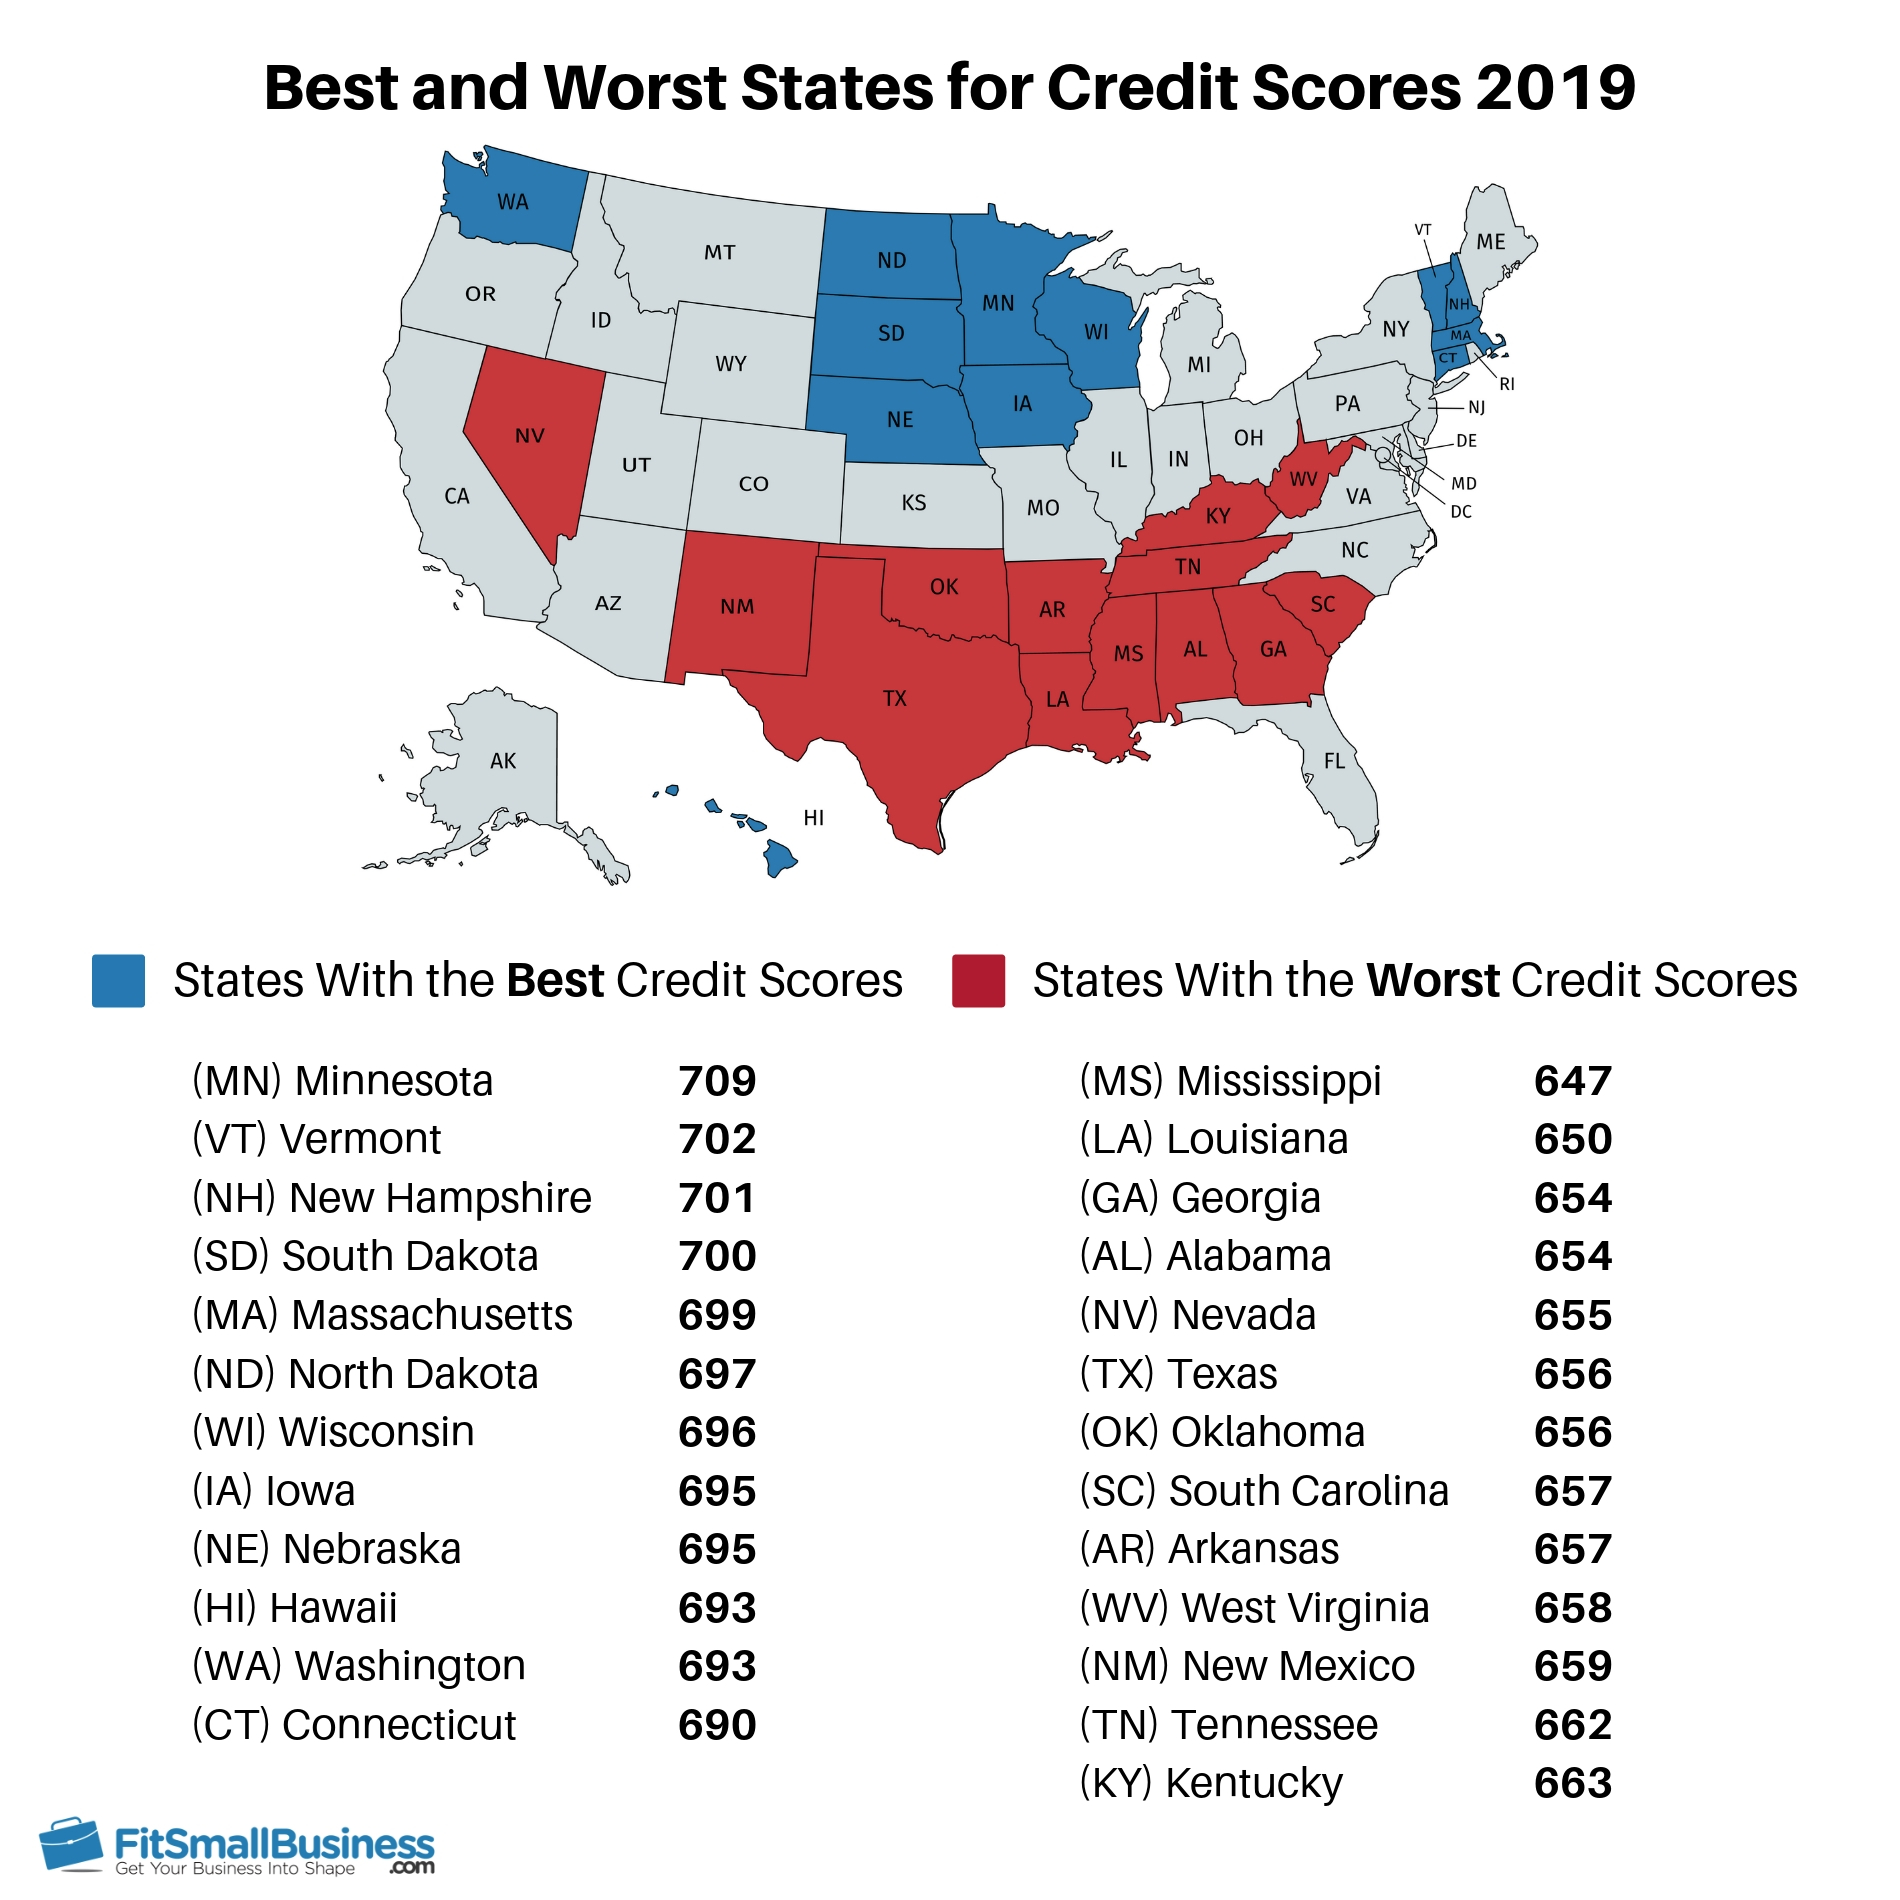 infographic showing the best and worst states for credit scores